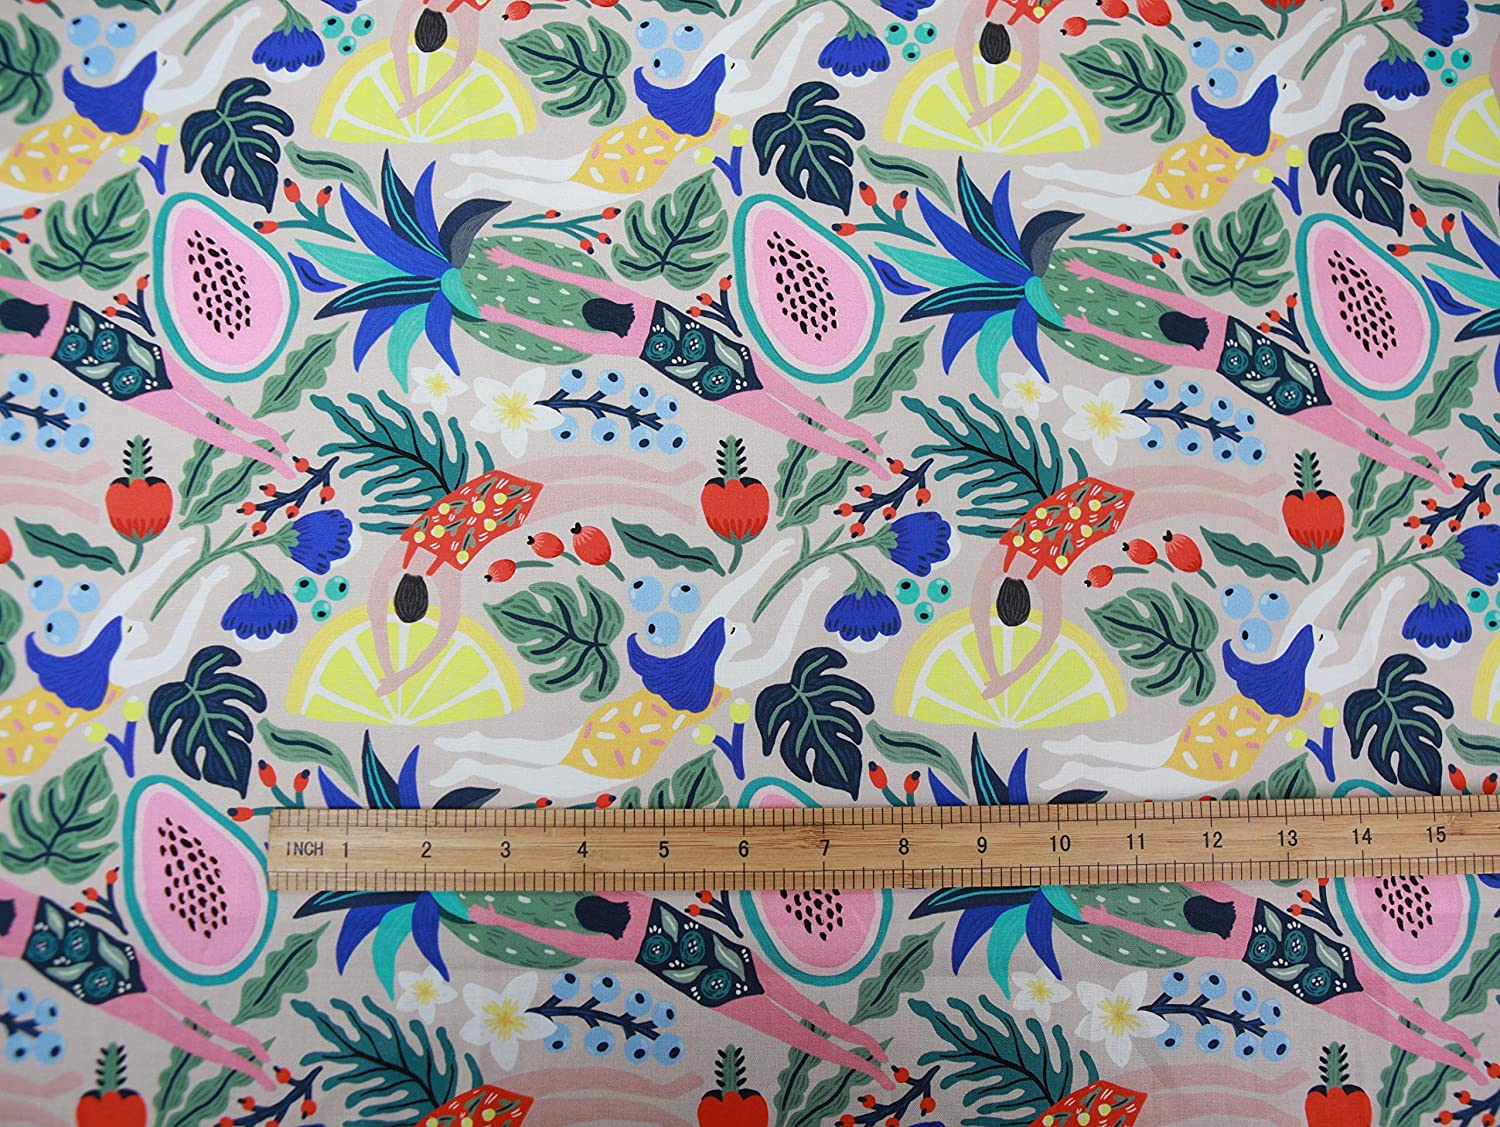 COTTONVILL MALLANGLUNA Collection 20count Cotton Print Quilting Fabric - Floral Forest (3yard, Mystic Swim-1)